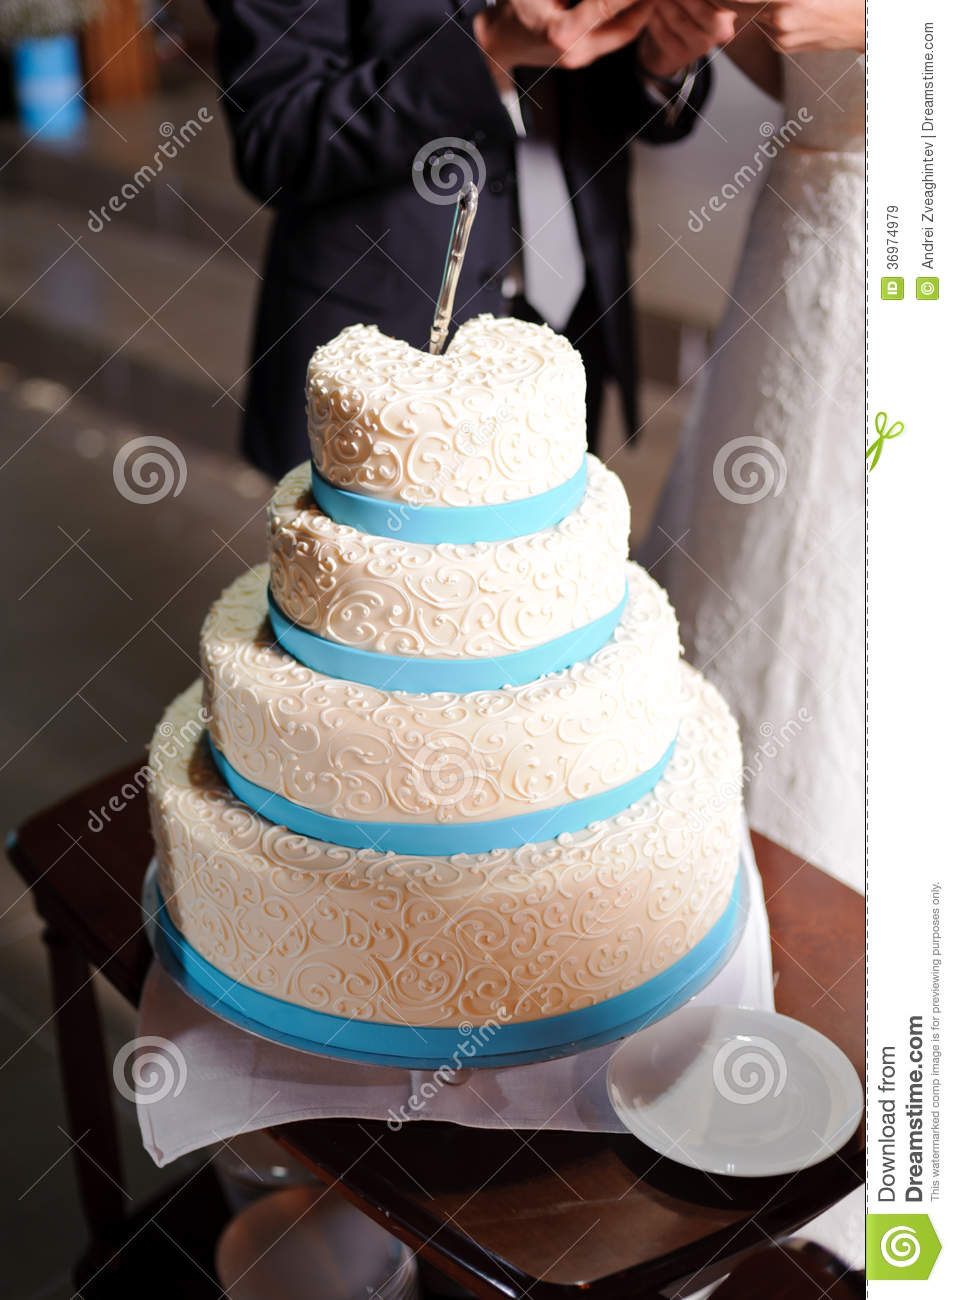 Cake With Blue Ribbon Stock Image Image Of Reception 36974979